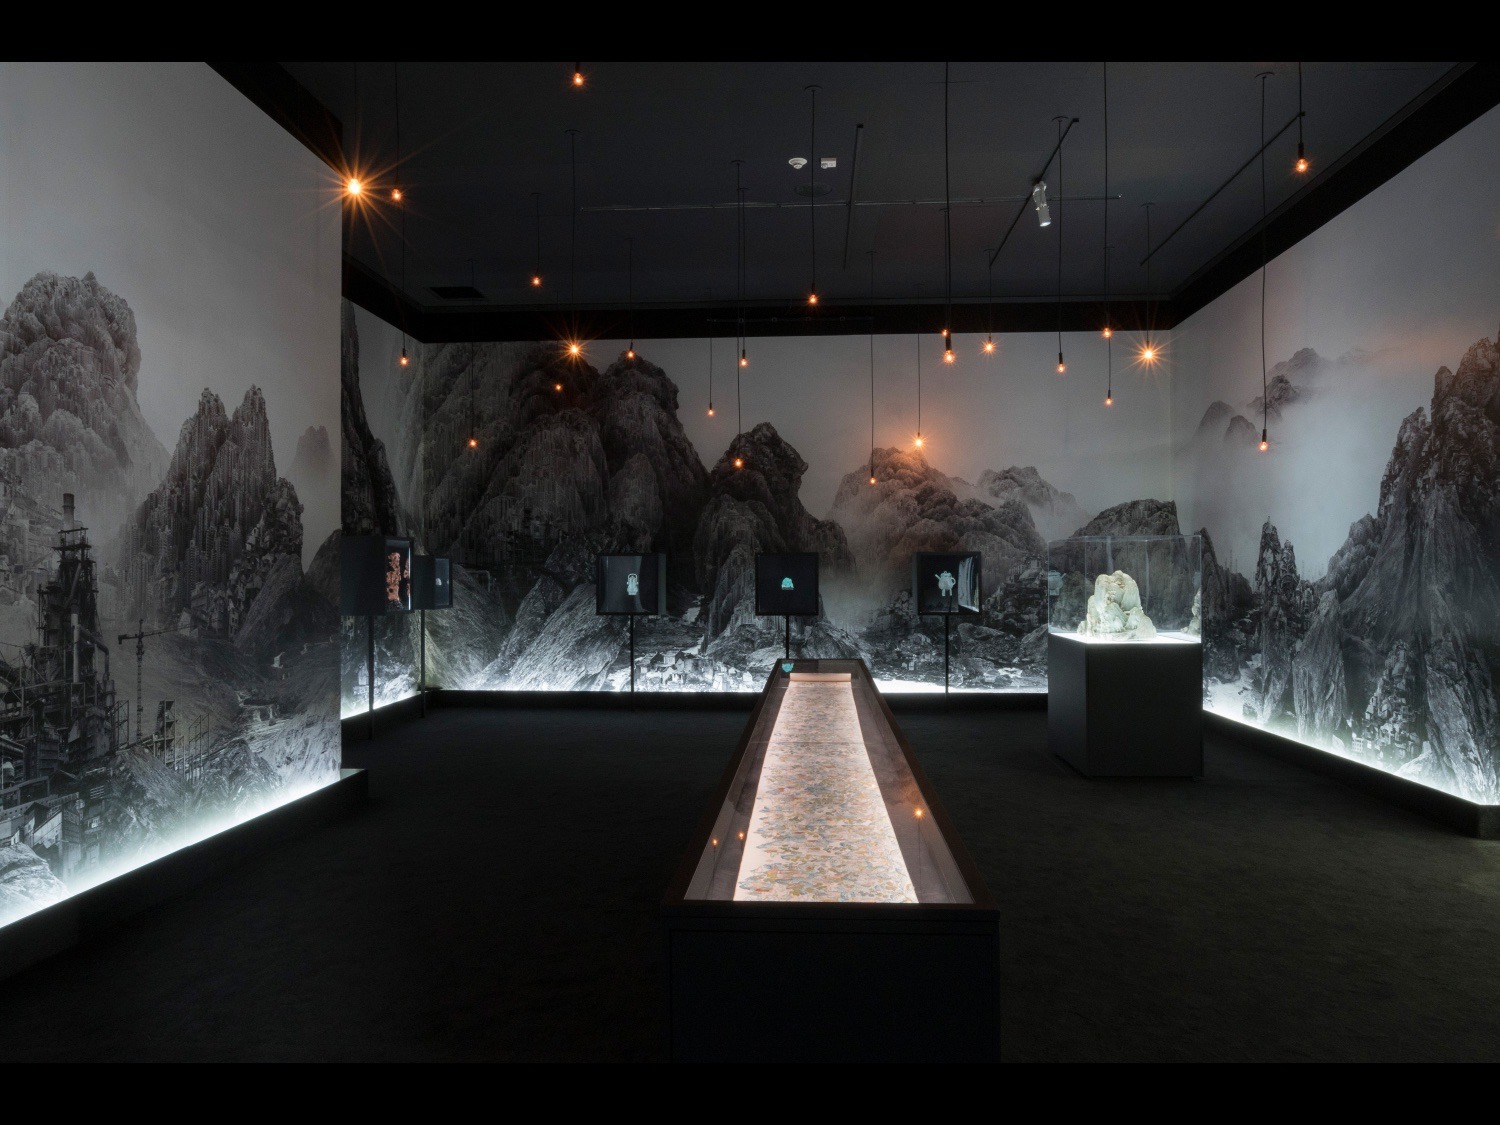 Power and Beauty in China's Last Dynasty Minneapolis Institute of Art, 2018 ©photo courtesy of Mia